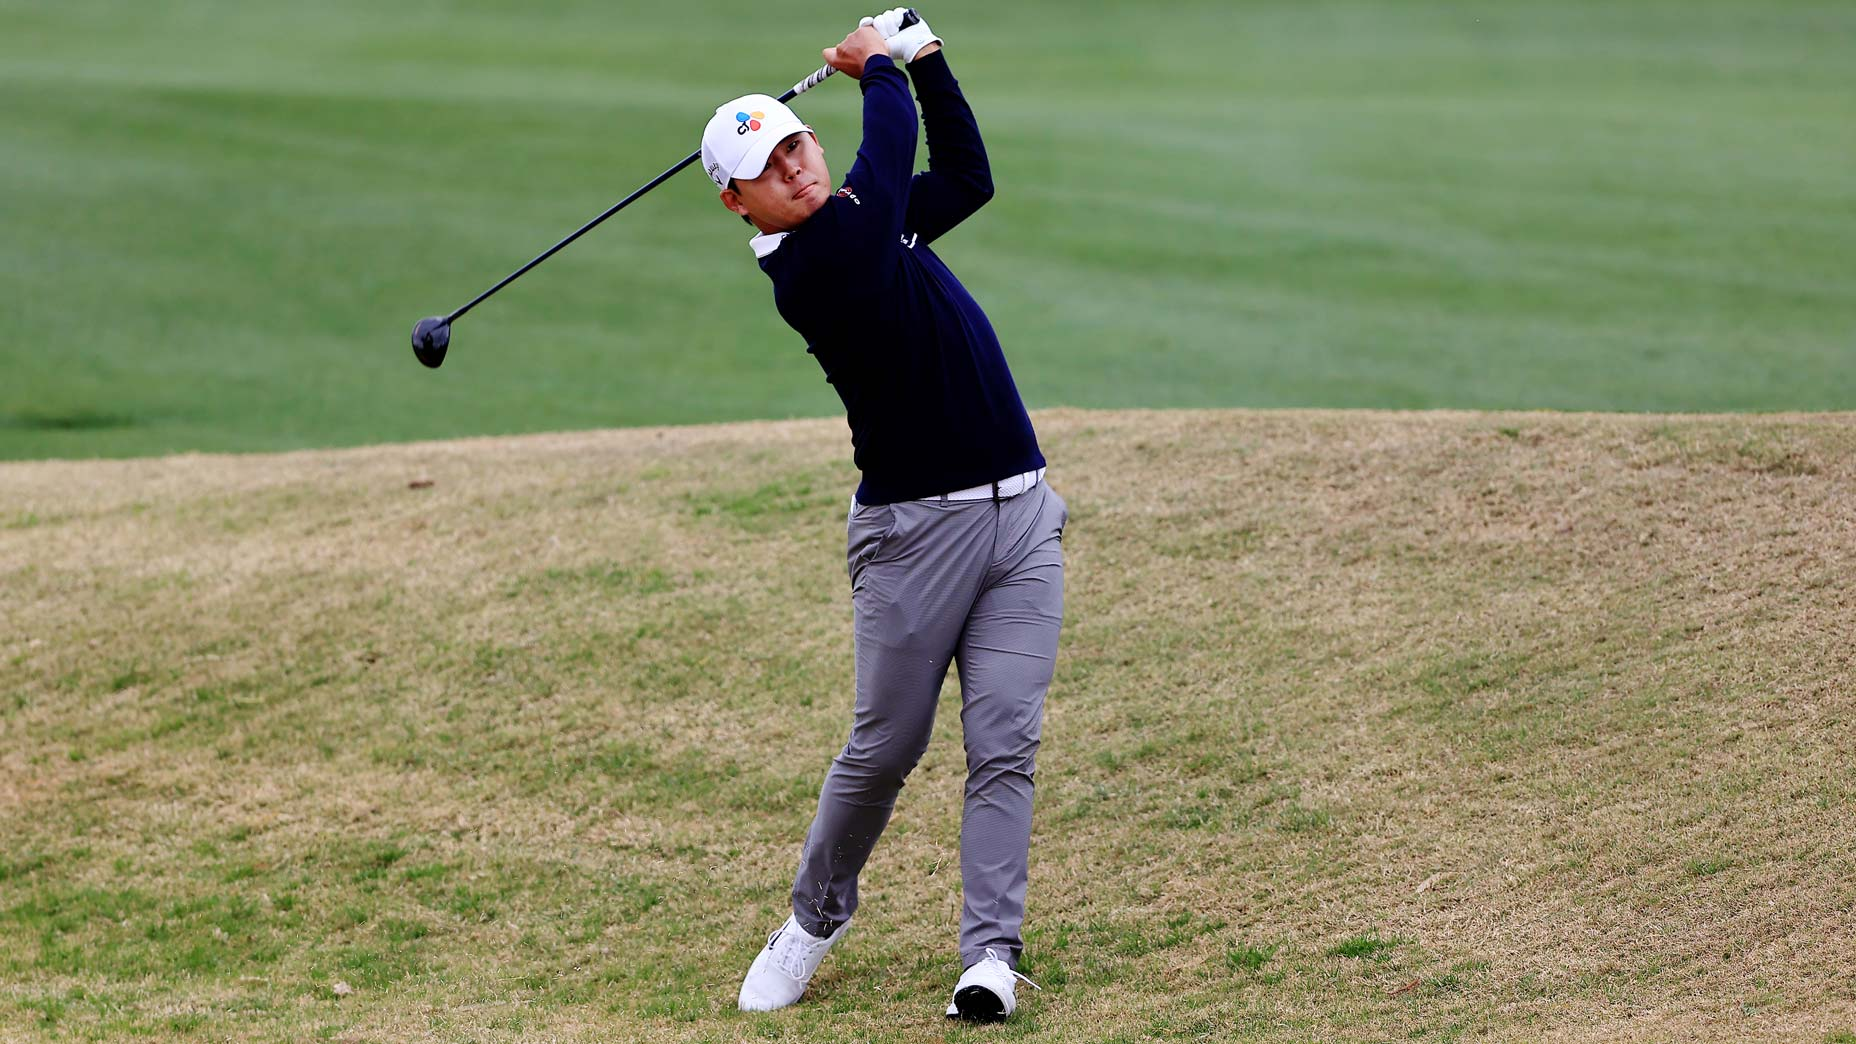 Struggle with fairway woods? Try these 3 tips to hit them like a pro